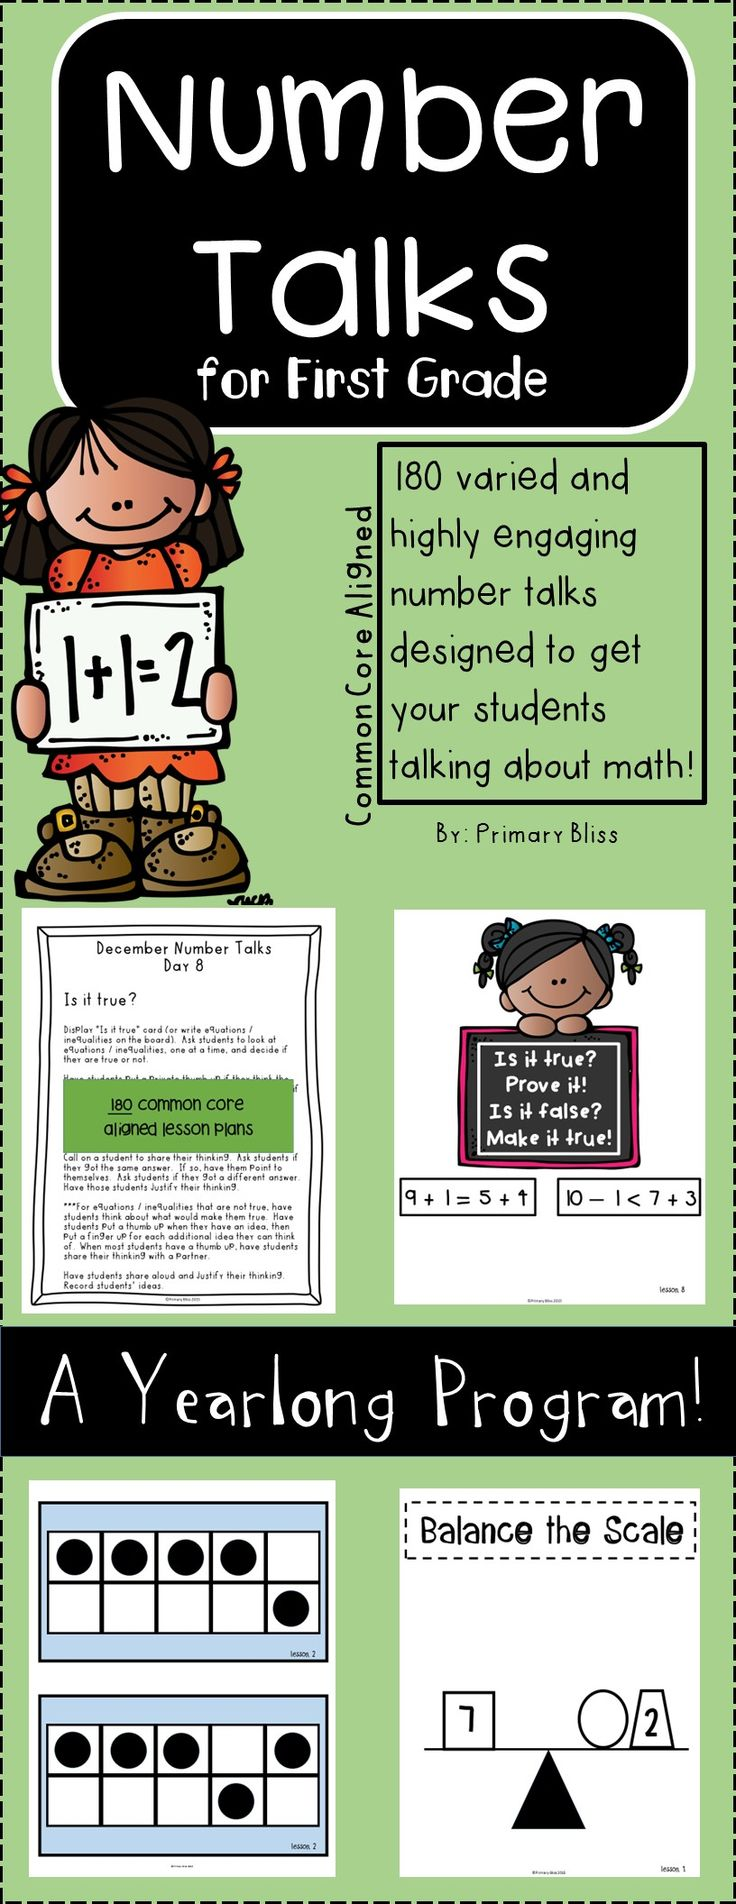 Do you want to integrate number talks into your daily routine, but are having a difficult time planning for them?  If so, this is for you!  This yearlong number talks program is specifically geared for first grade and contains 180 varied activities that increase in difficulty as the year progresses.  Your students are going to love engaging in mathematical discourse with their peers!  #numbertalks  #math  #firstgrade